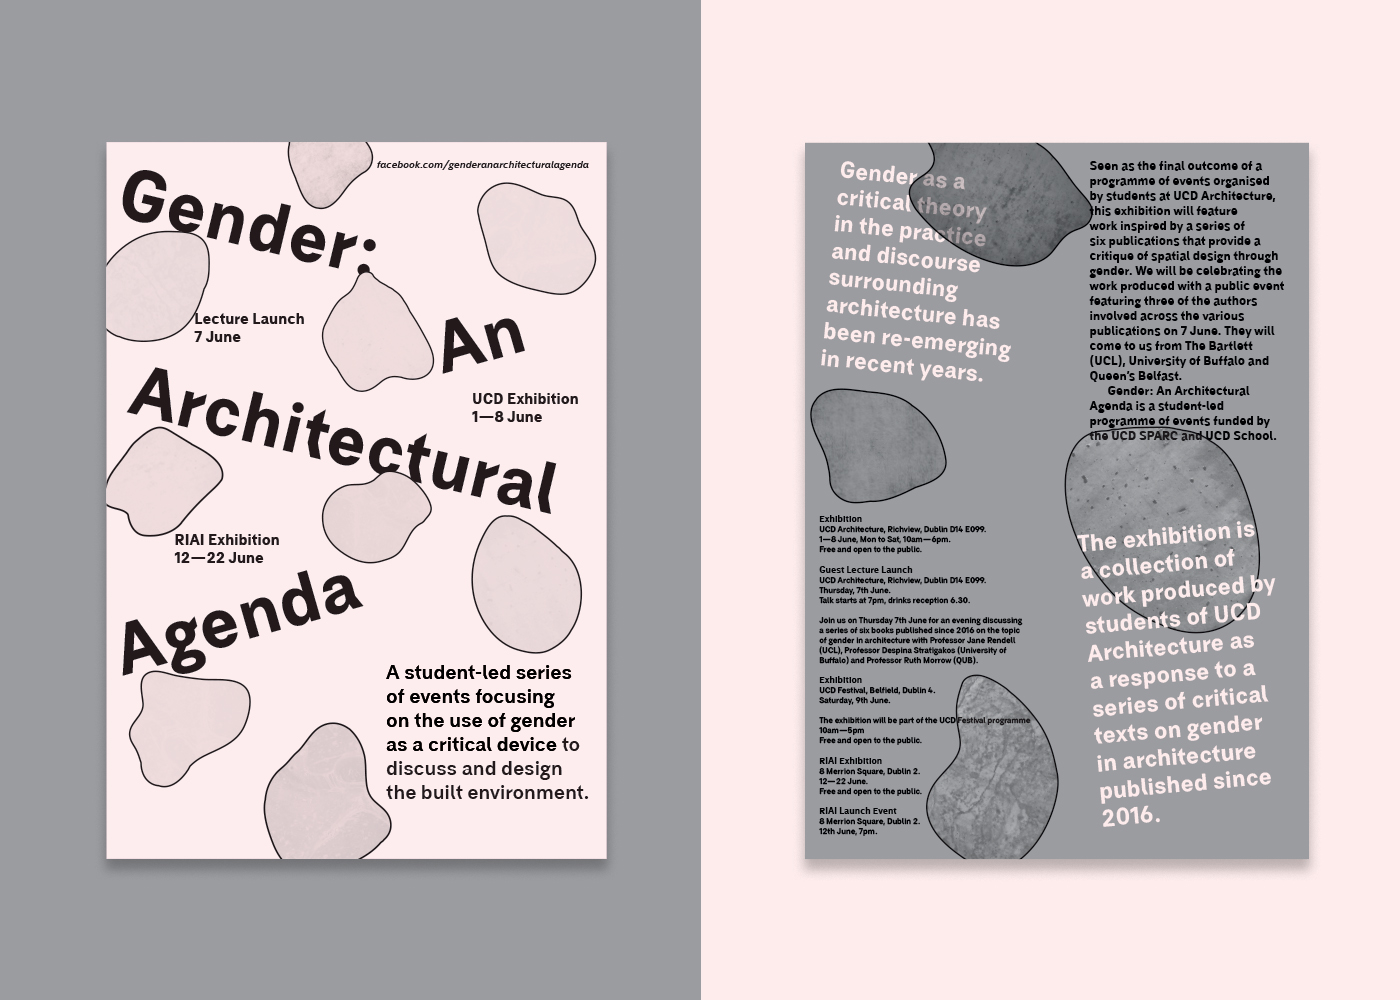 Cover image: Gender: An Architectural Agenda